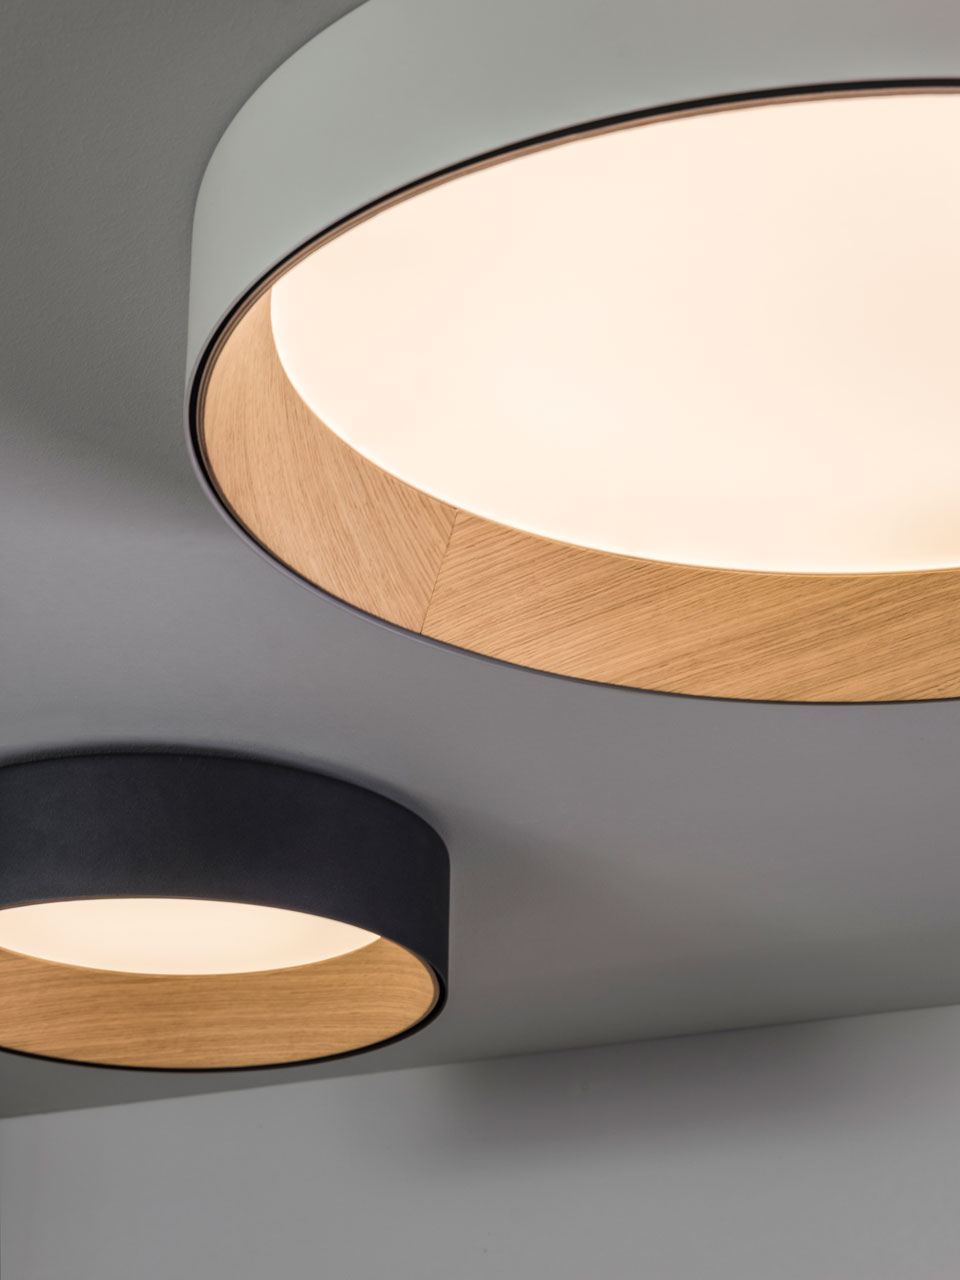 Vibia - Stories Behind Duo1